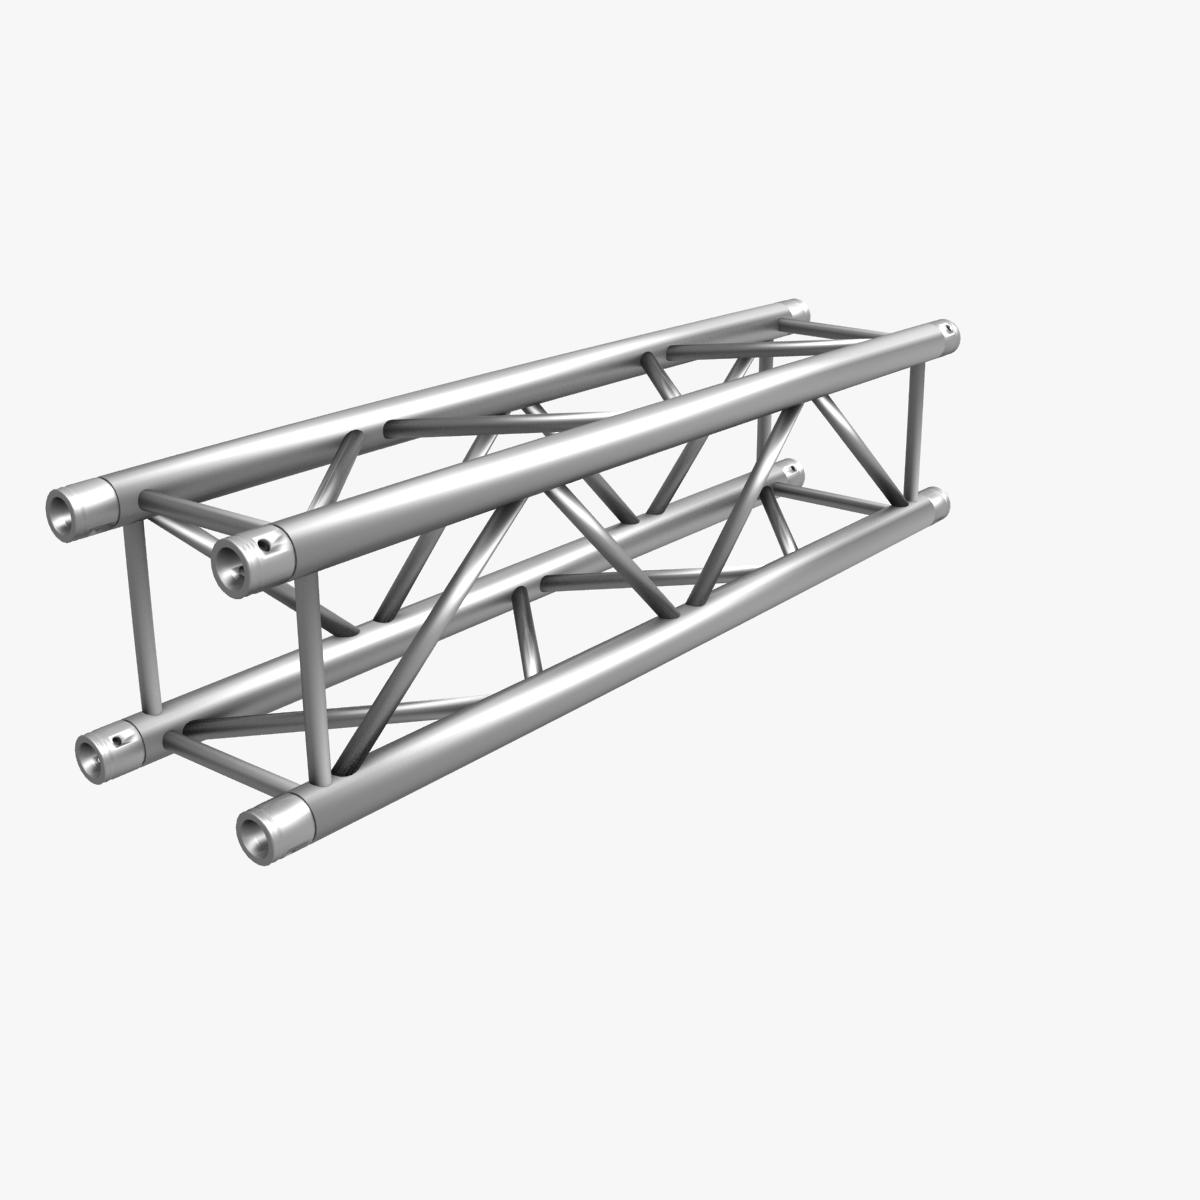 square truss standard (collection 24 modular) 3d model 3ds max dxf fbx c4d dae  texture obj 216330